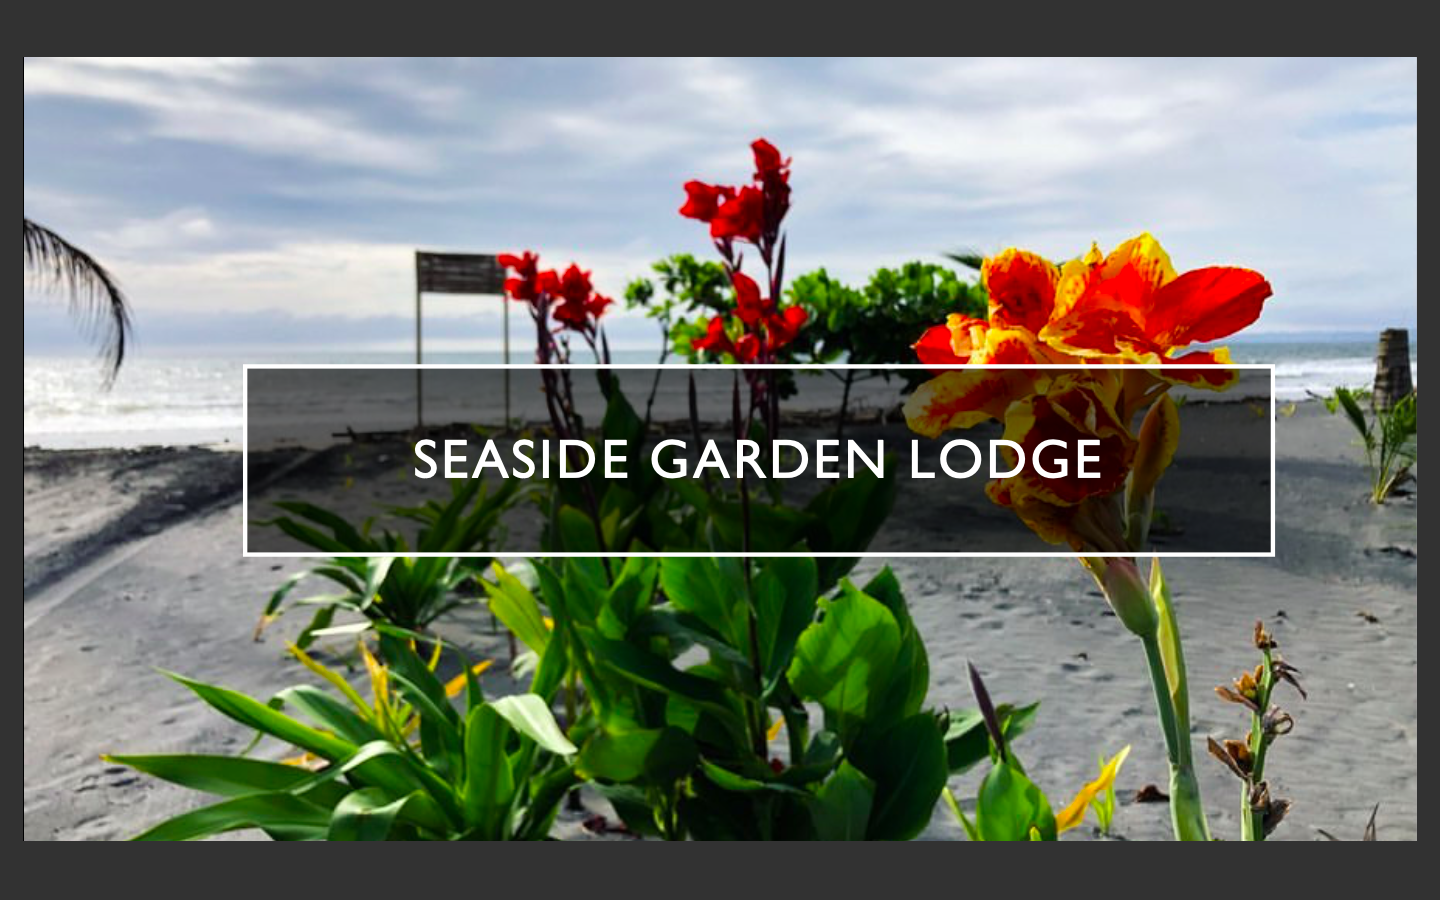 9. SEASIDE INTRO GARDEN BEACH